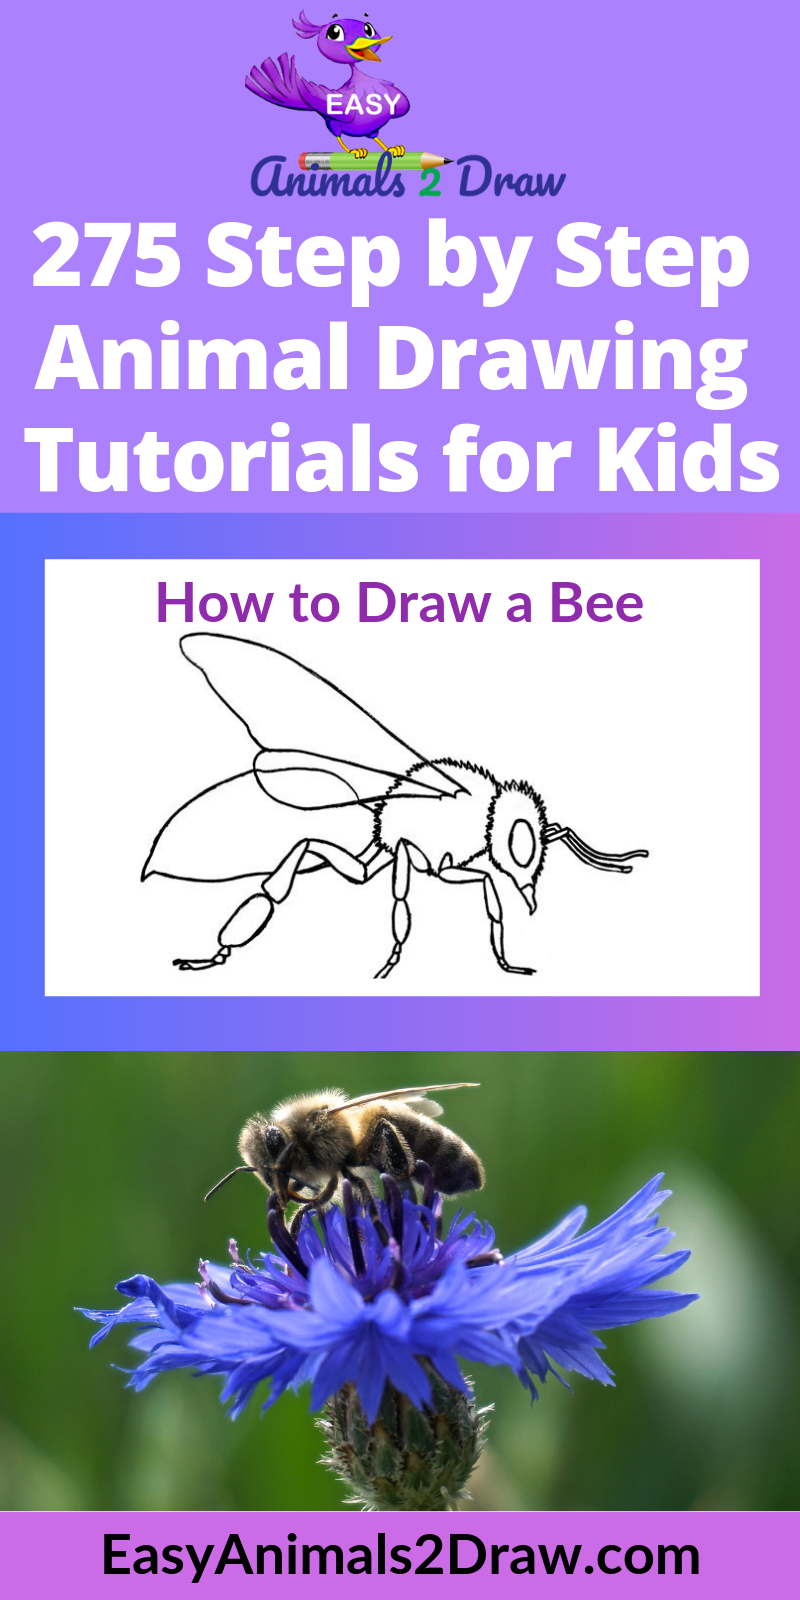 Learn How To Draw An Amazing Bee With This Easy And Inspirational Step By Step Drawing Tutorial For Kids Of All Ages Sta Easy Animals Animal Drawings Drawings